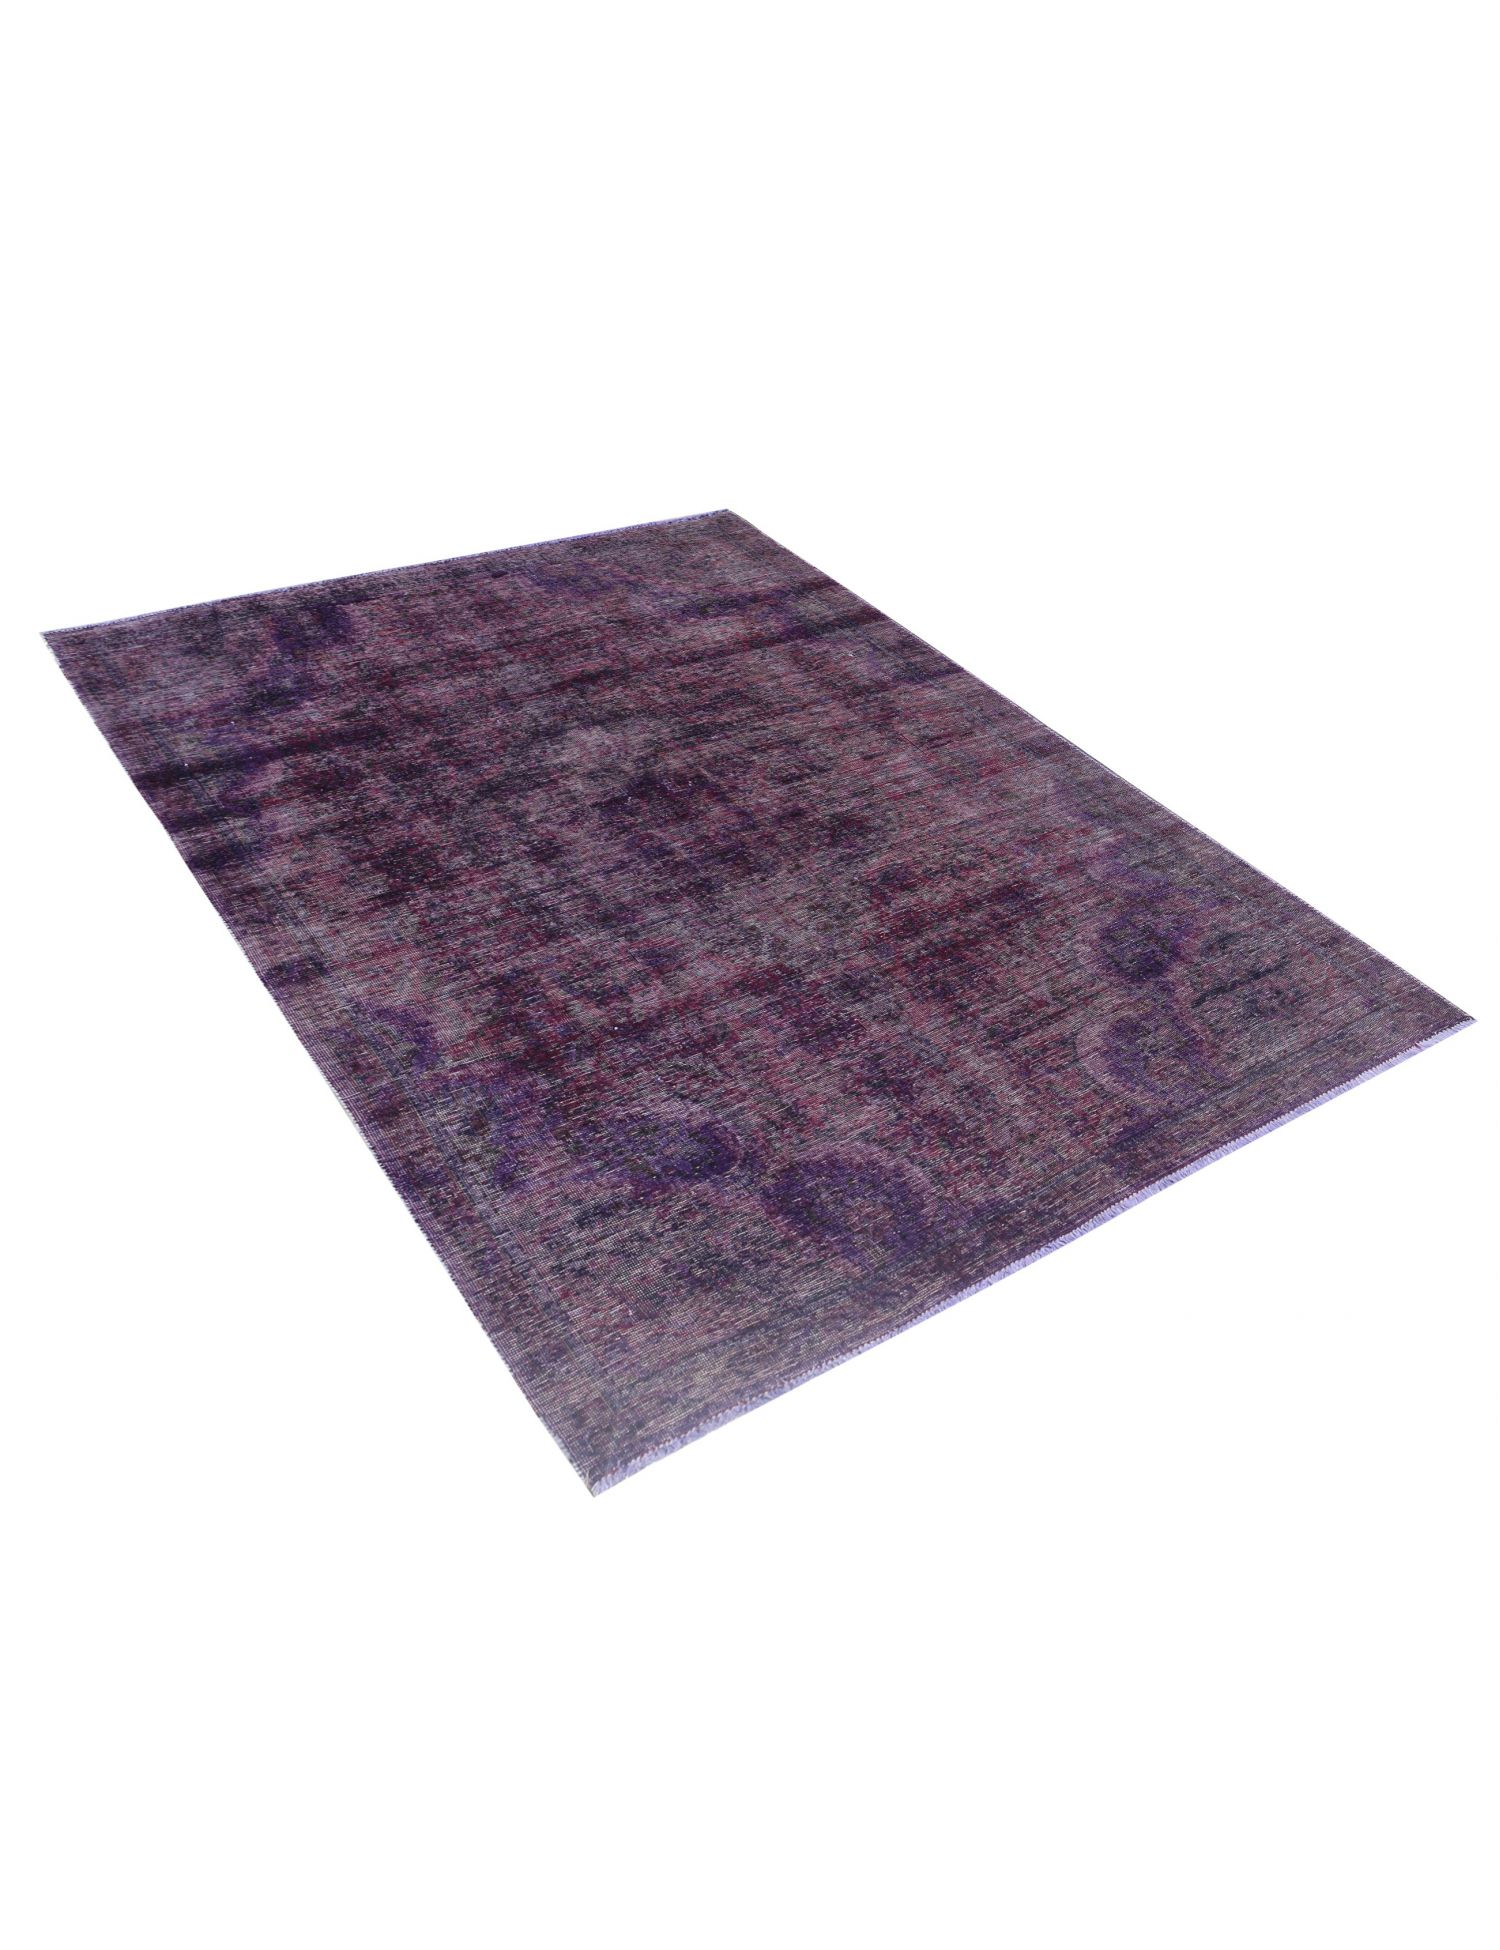 Vintage Carpet  purple <br/>255 x 183 cm